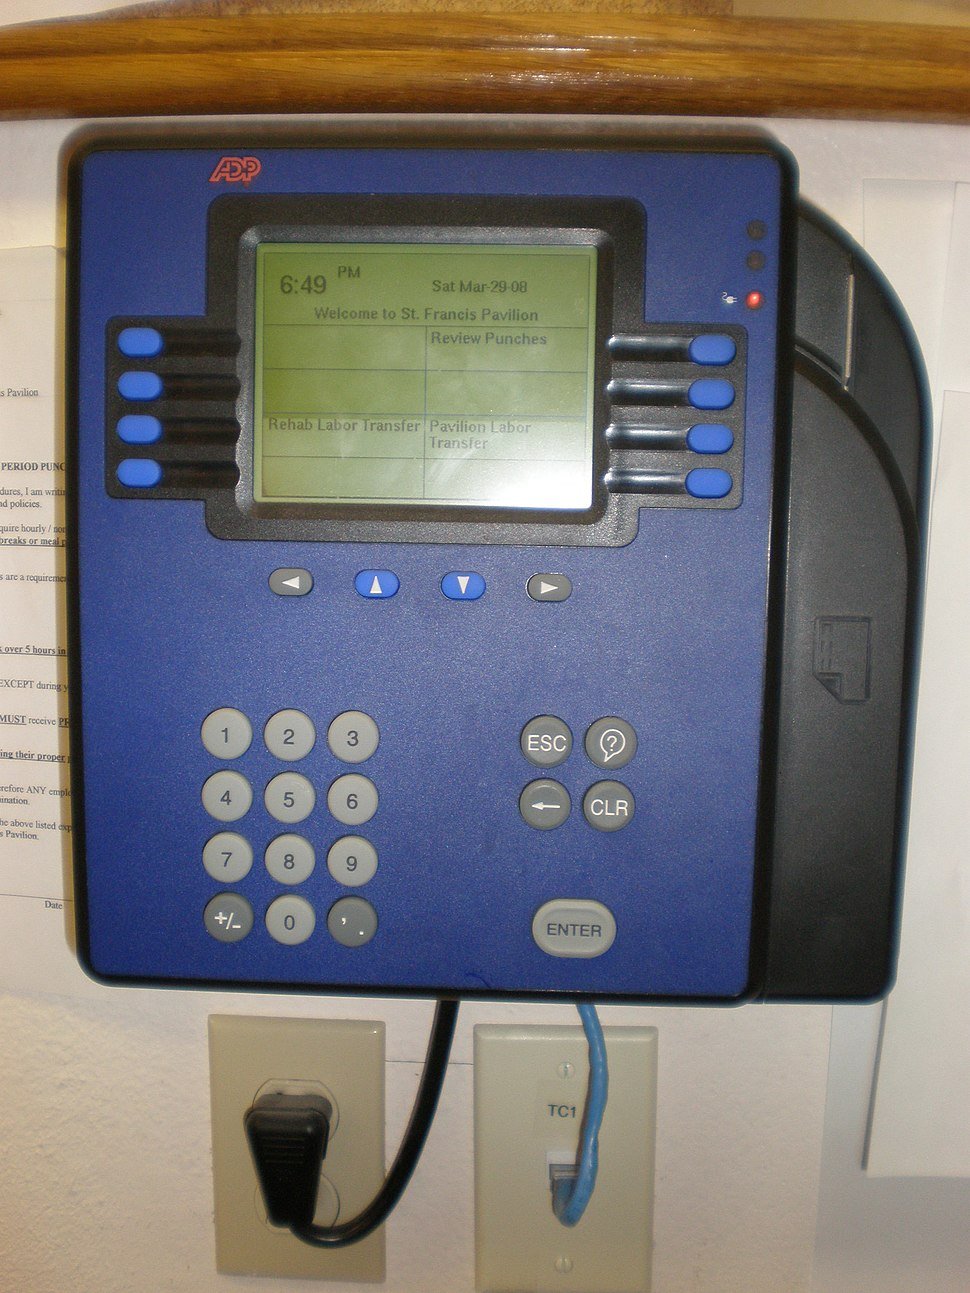 ADP Model 4500 timecard reader